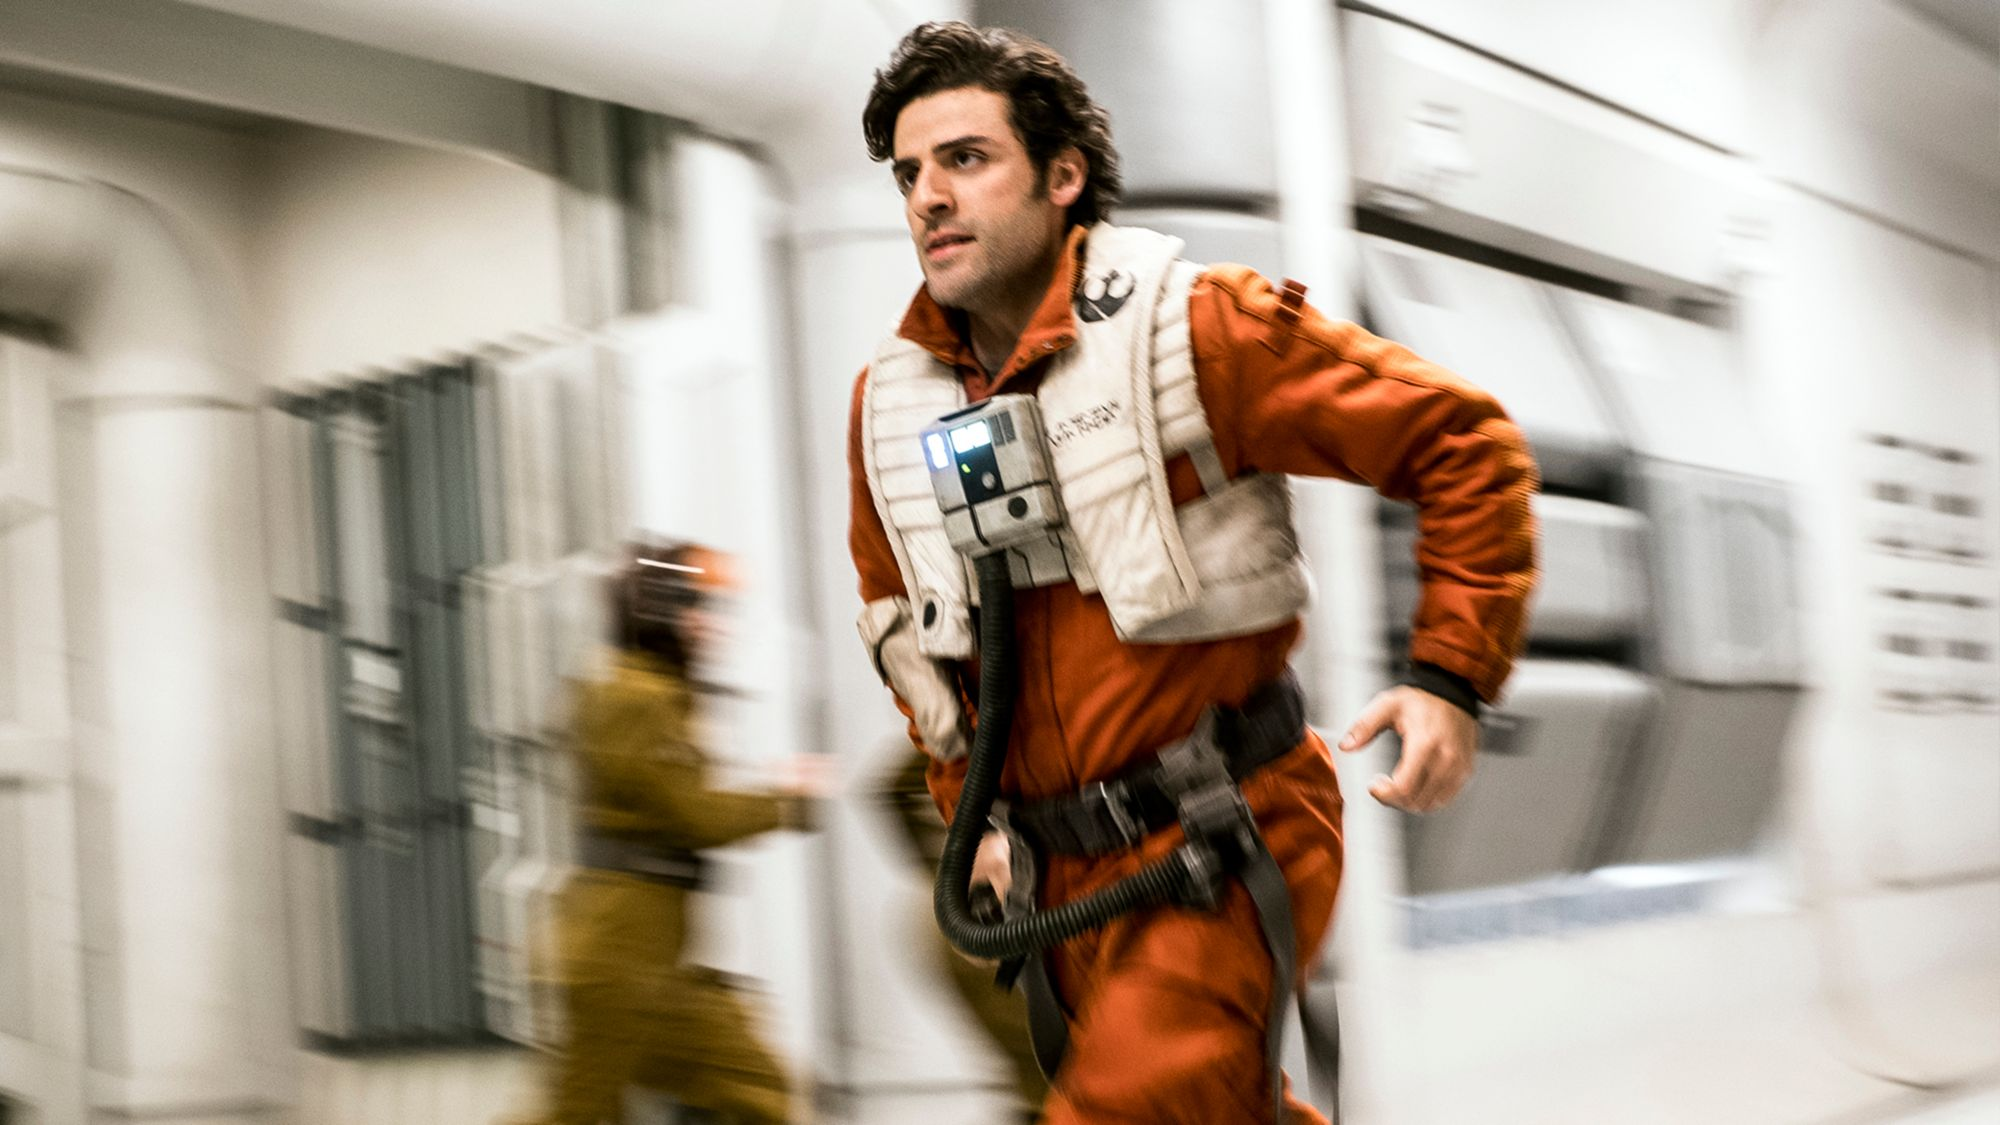 Star Wars The Last Jedi hub: Poe  running